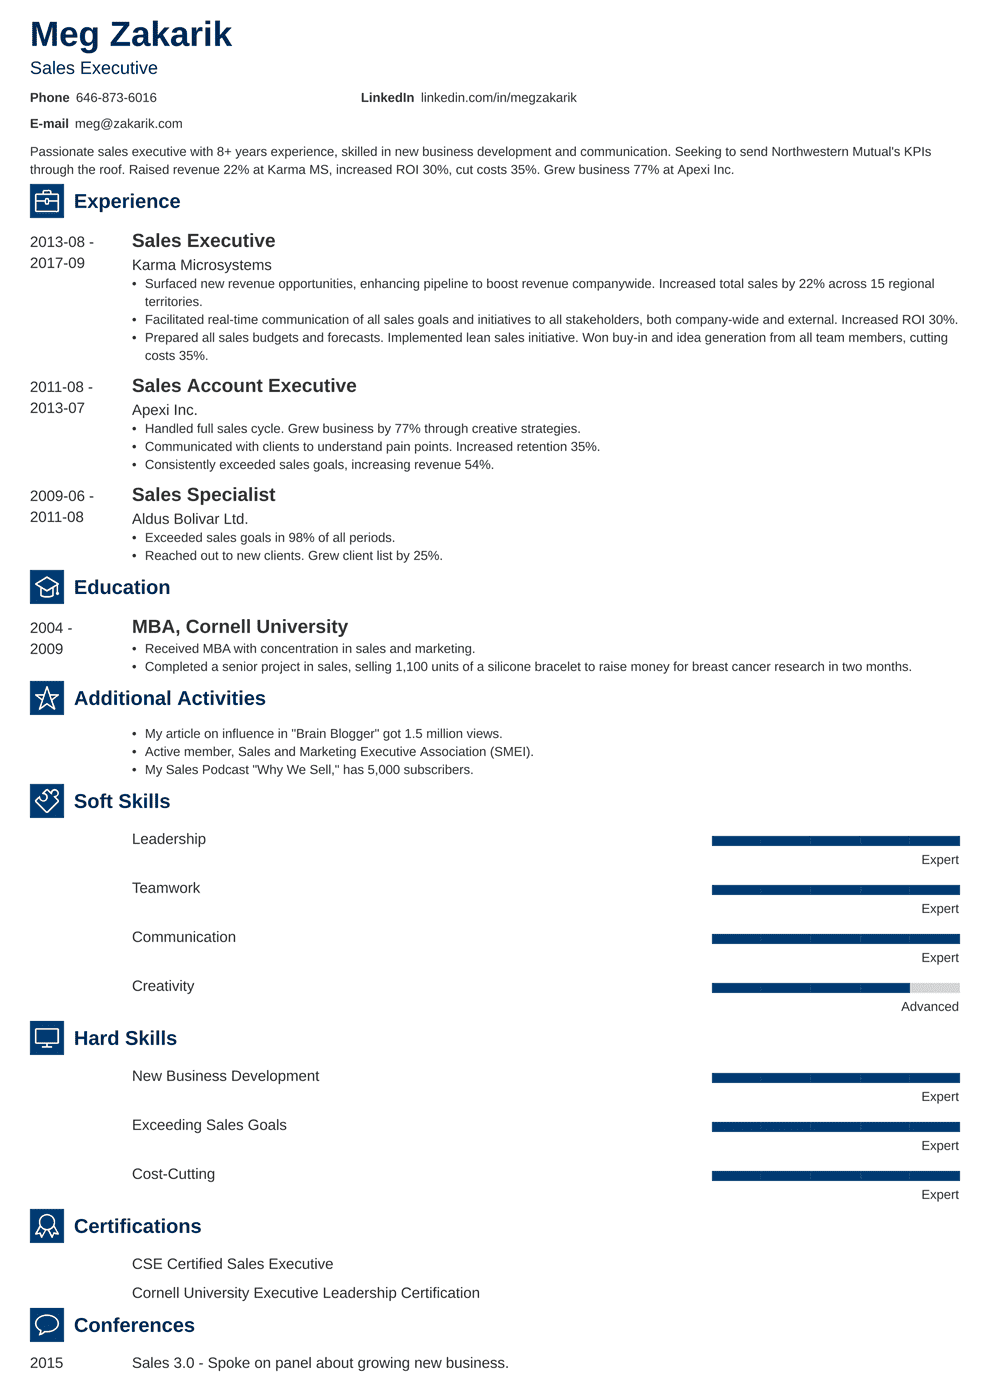 Executive Resume: Template & 20+ Exec Level Examples